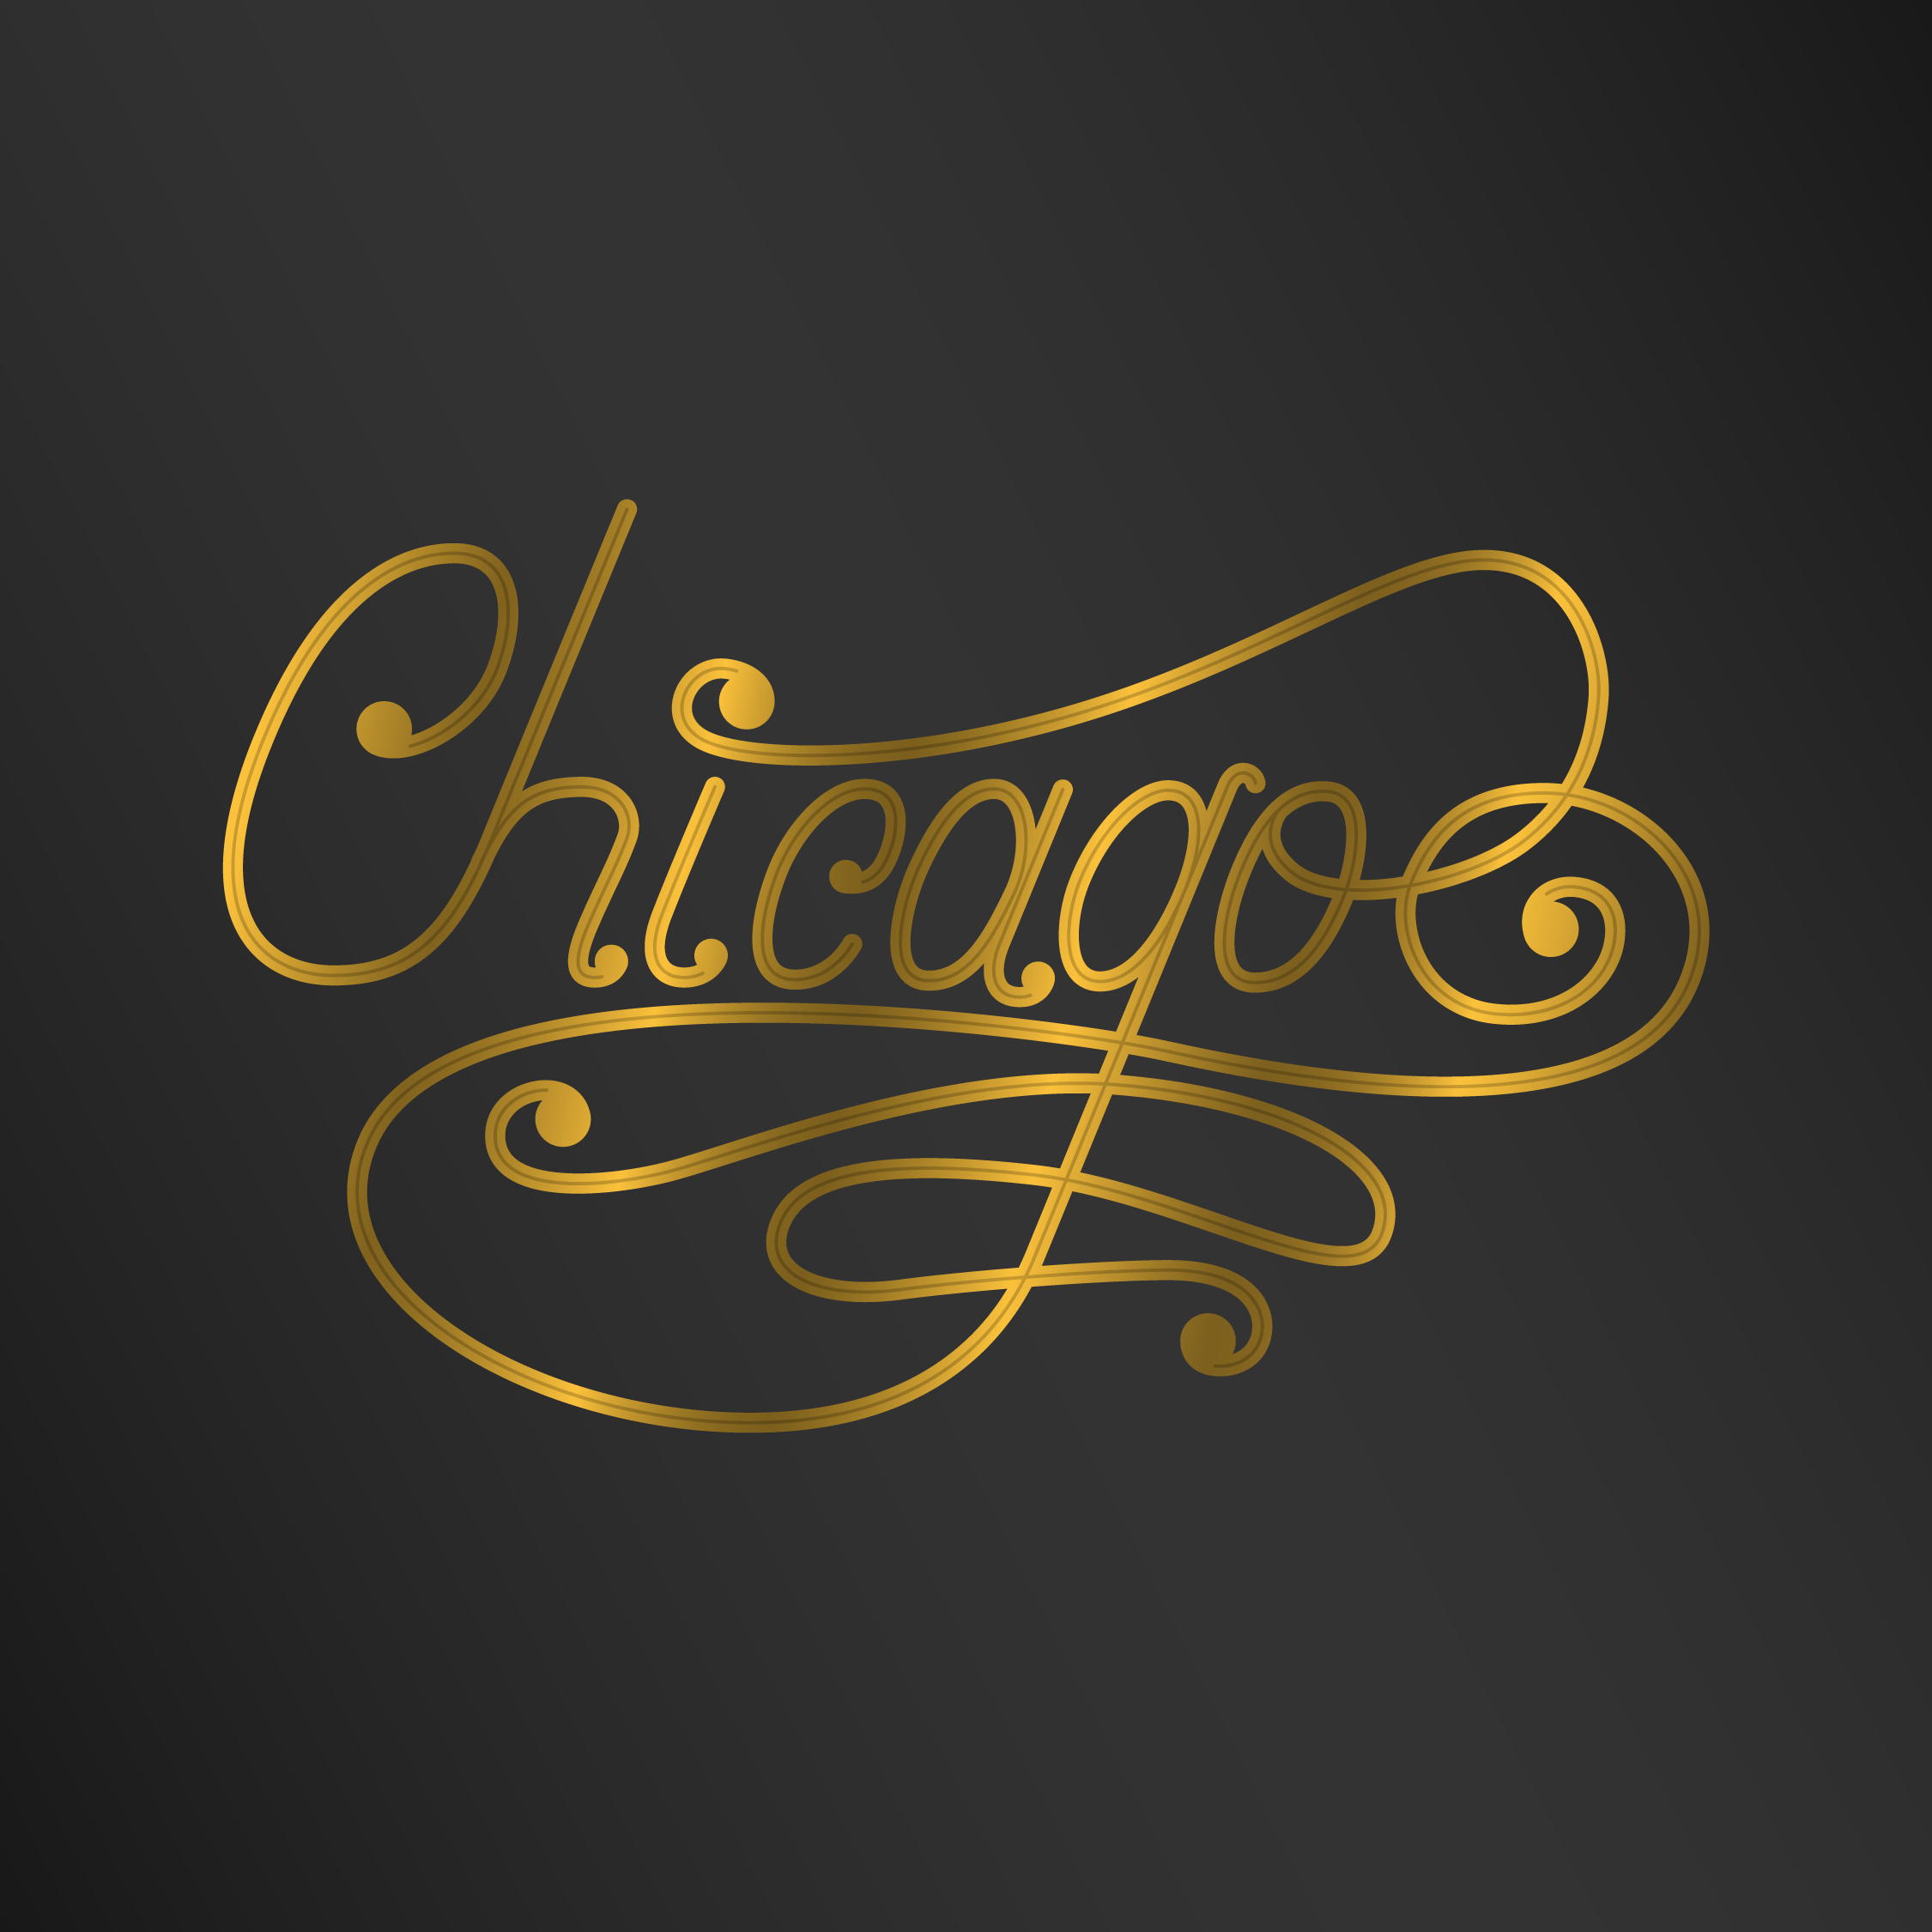 Chicago-Insta01.png